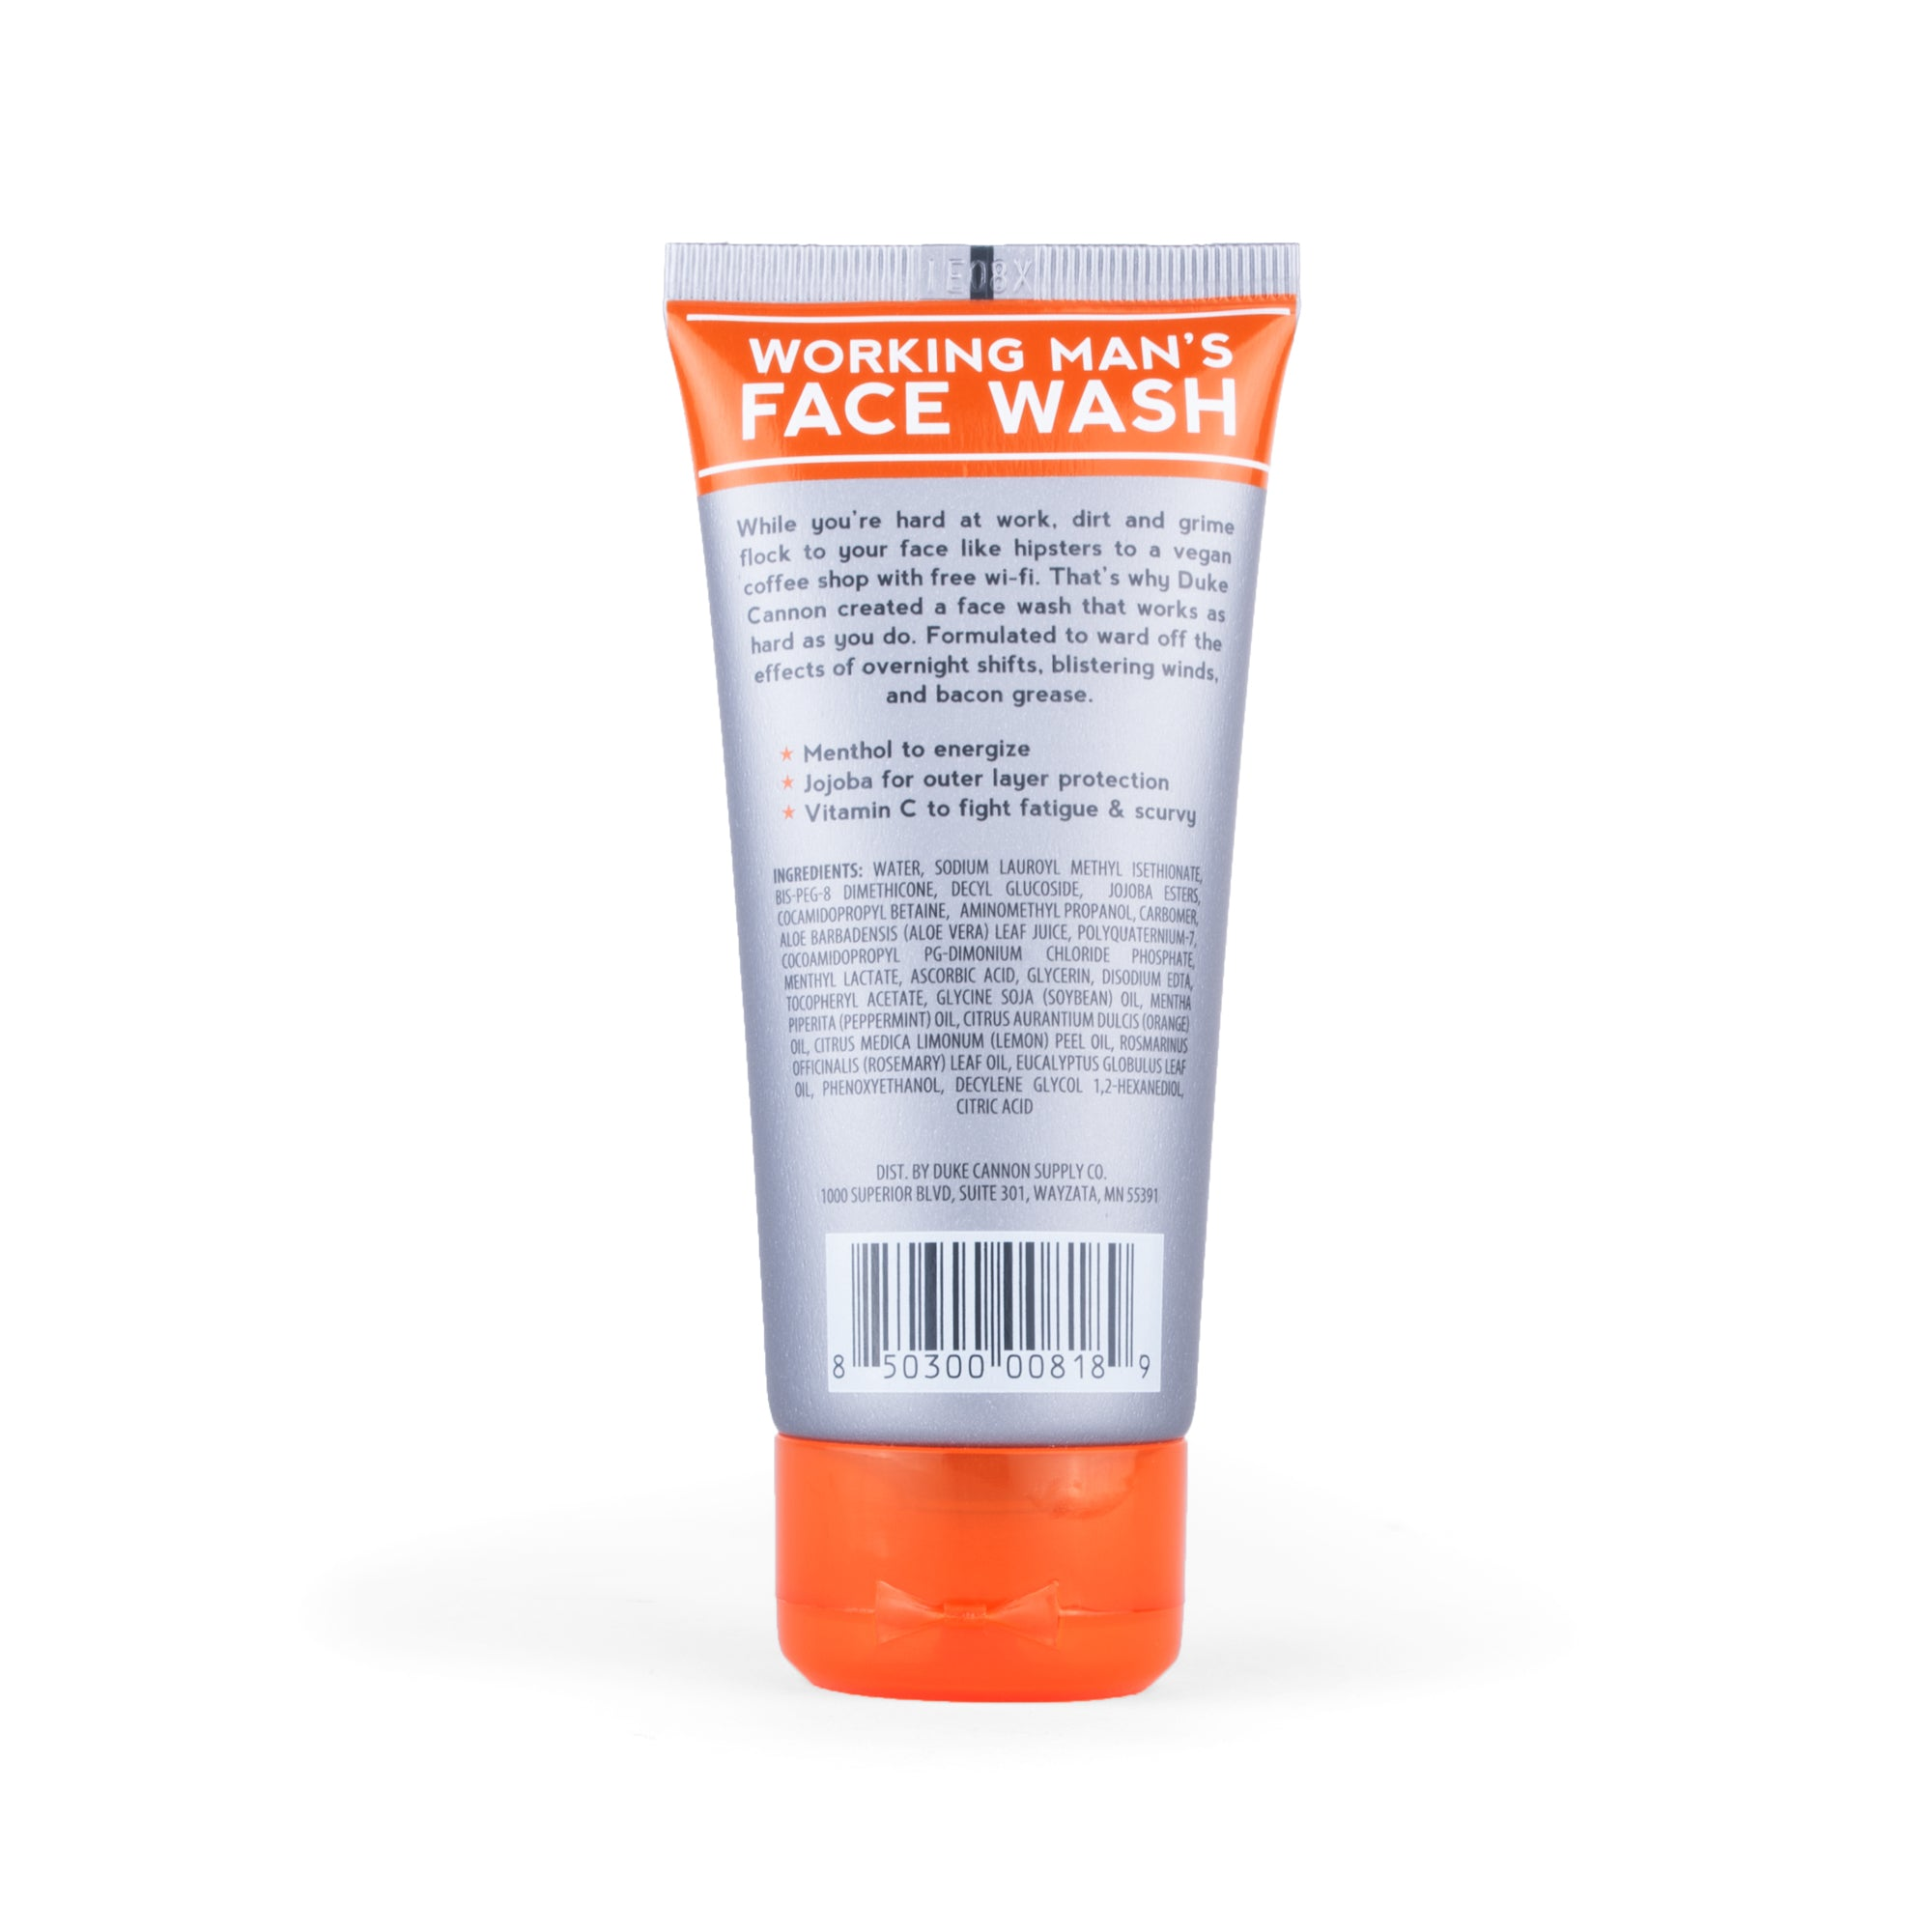 Working Man's Face Wash - Travel Size - Duke Cannon